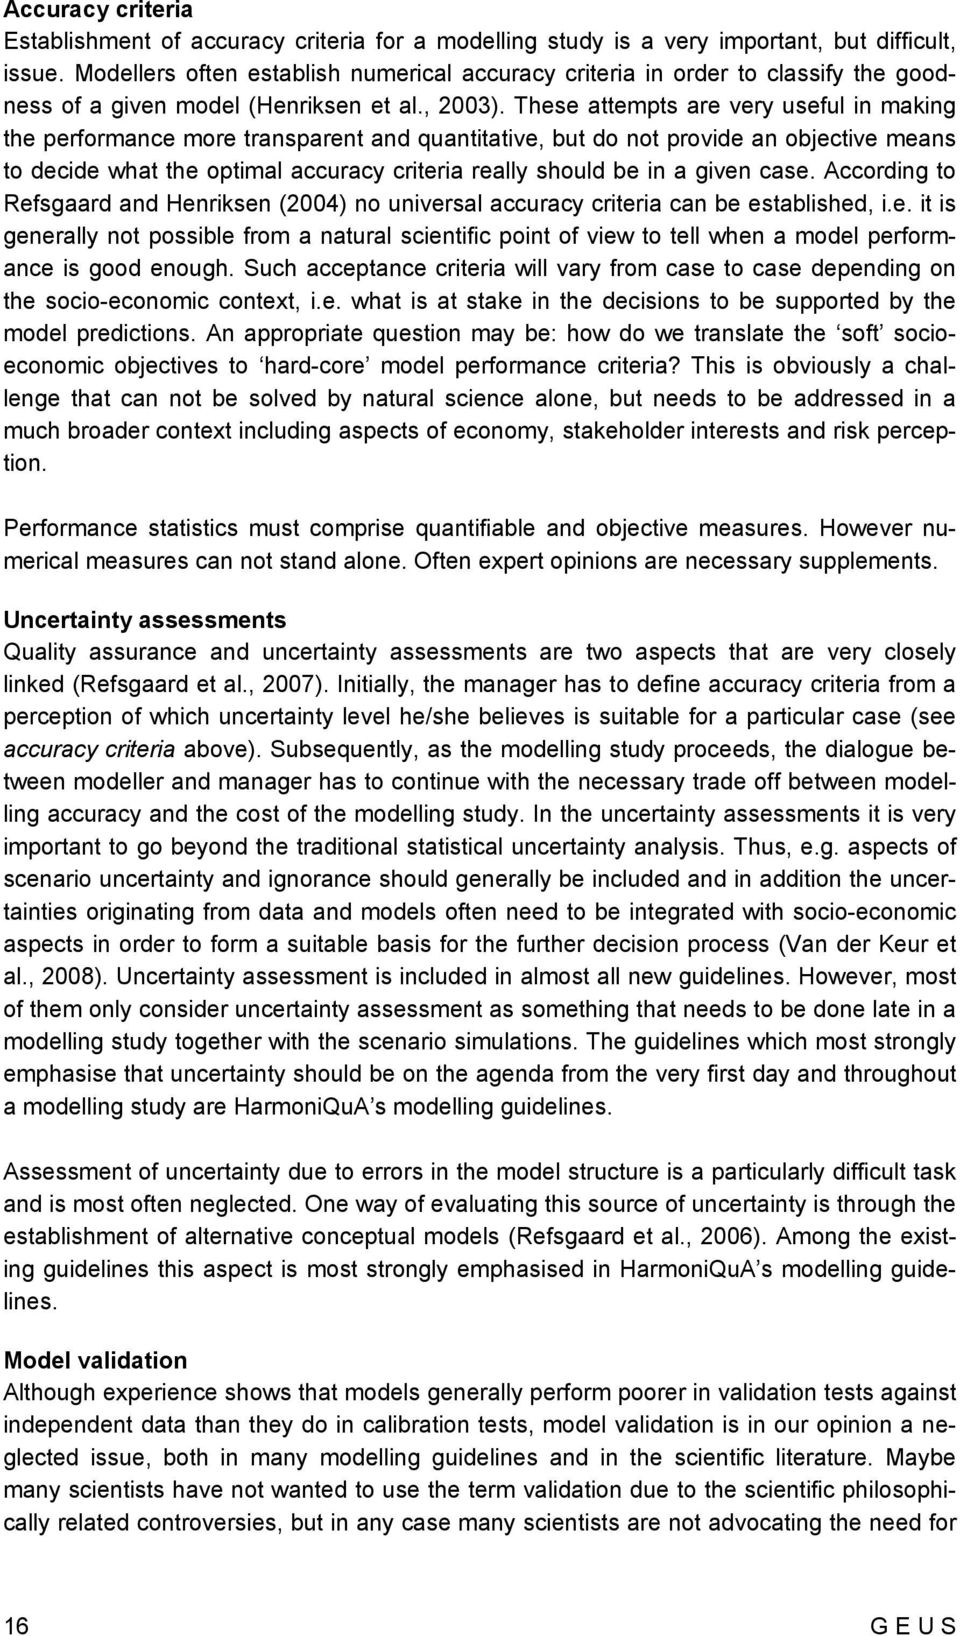 These attempts are very useful in making the performance more transpare and quaitative, but do not provide an objective means to decide what the optimal accuracy criteria really should be in a given